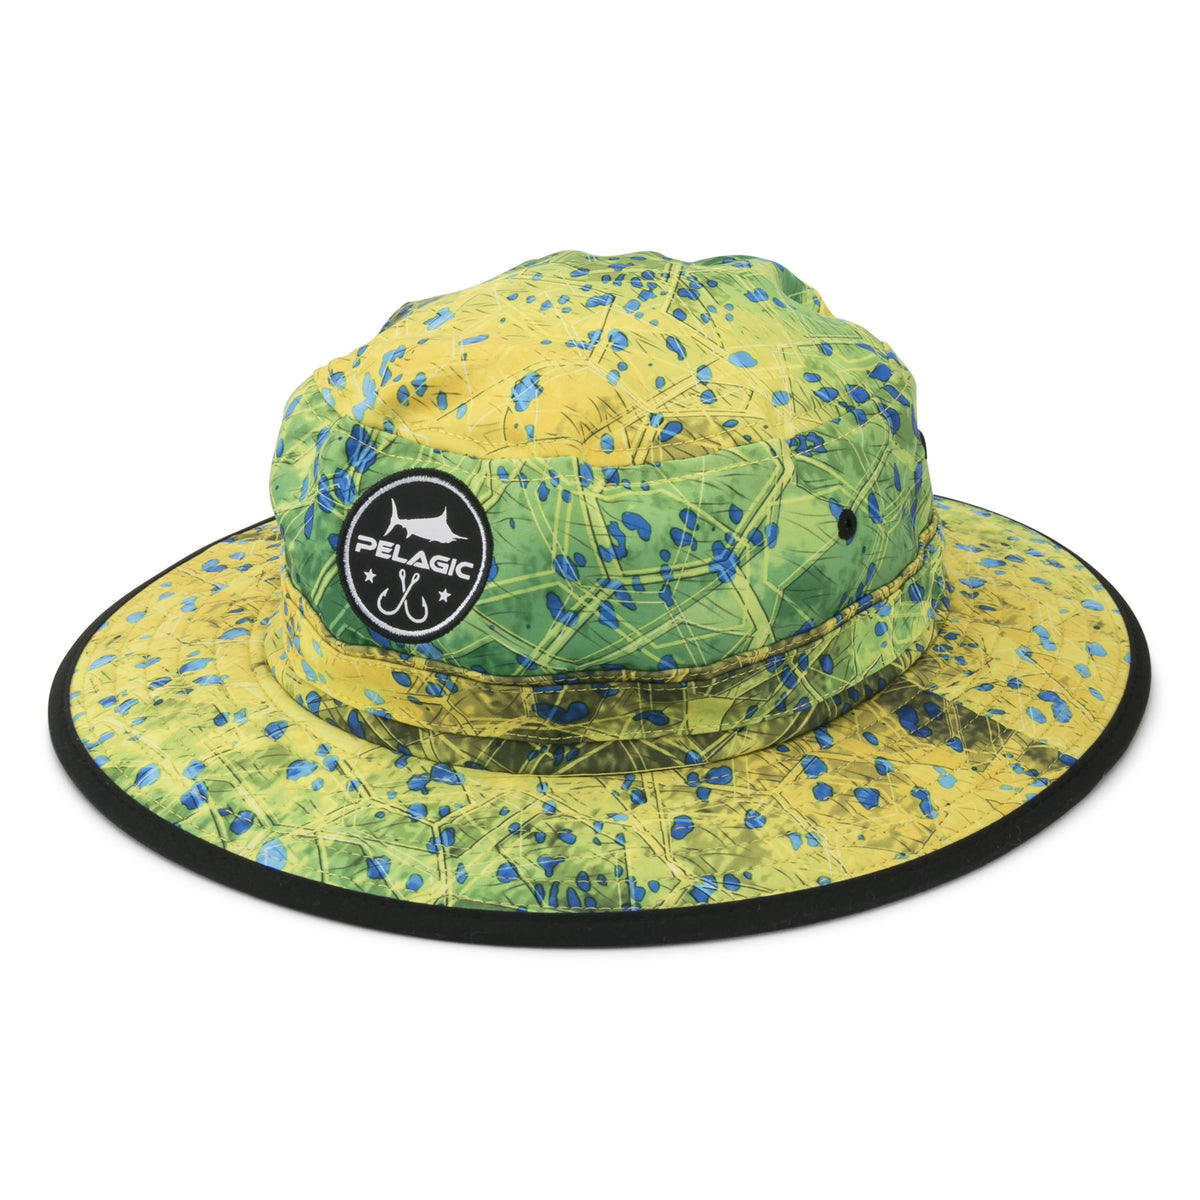 Sunsetter Bucket Hat Big Image - 1